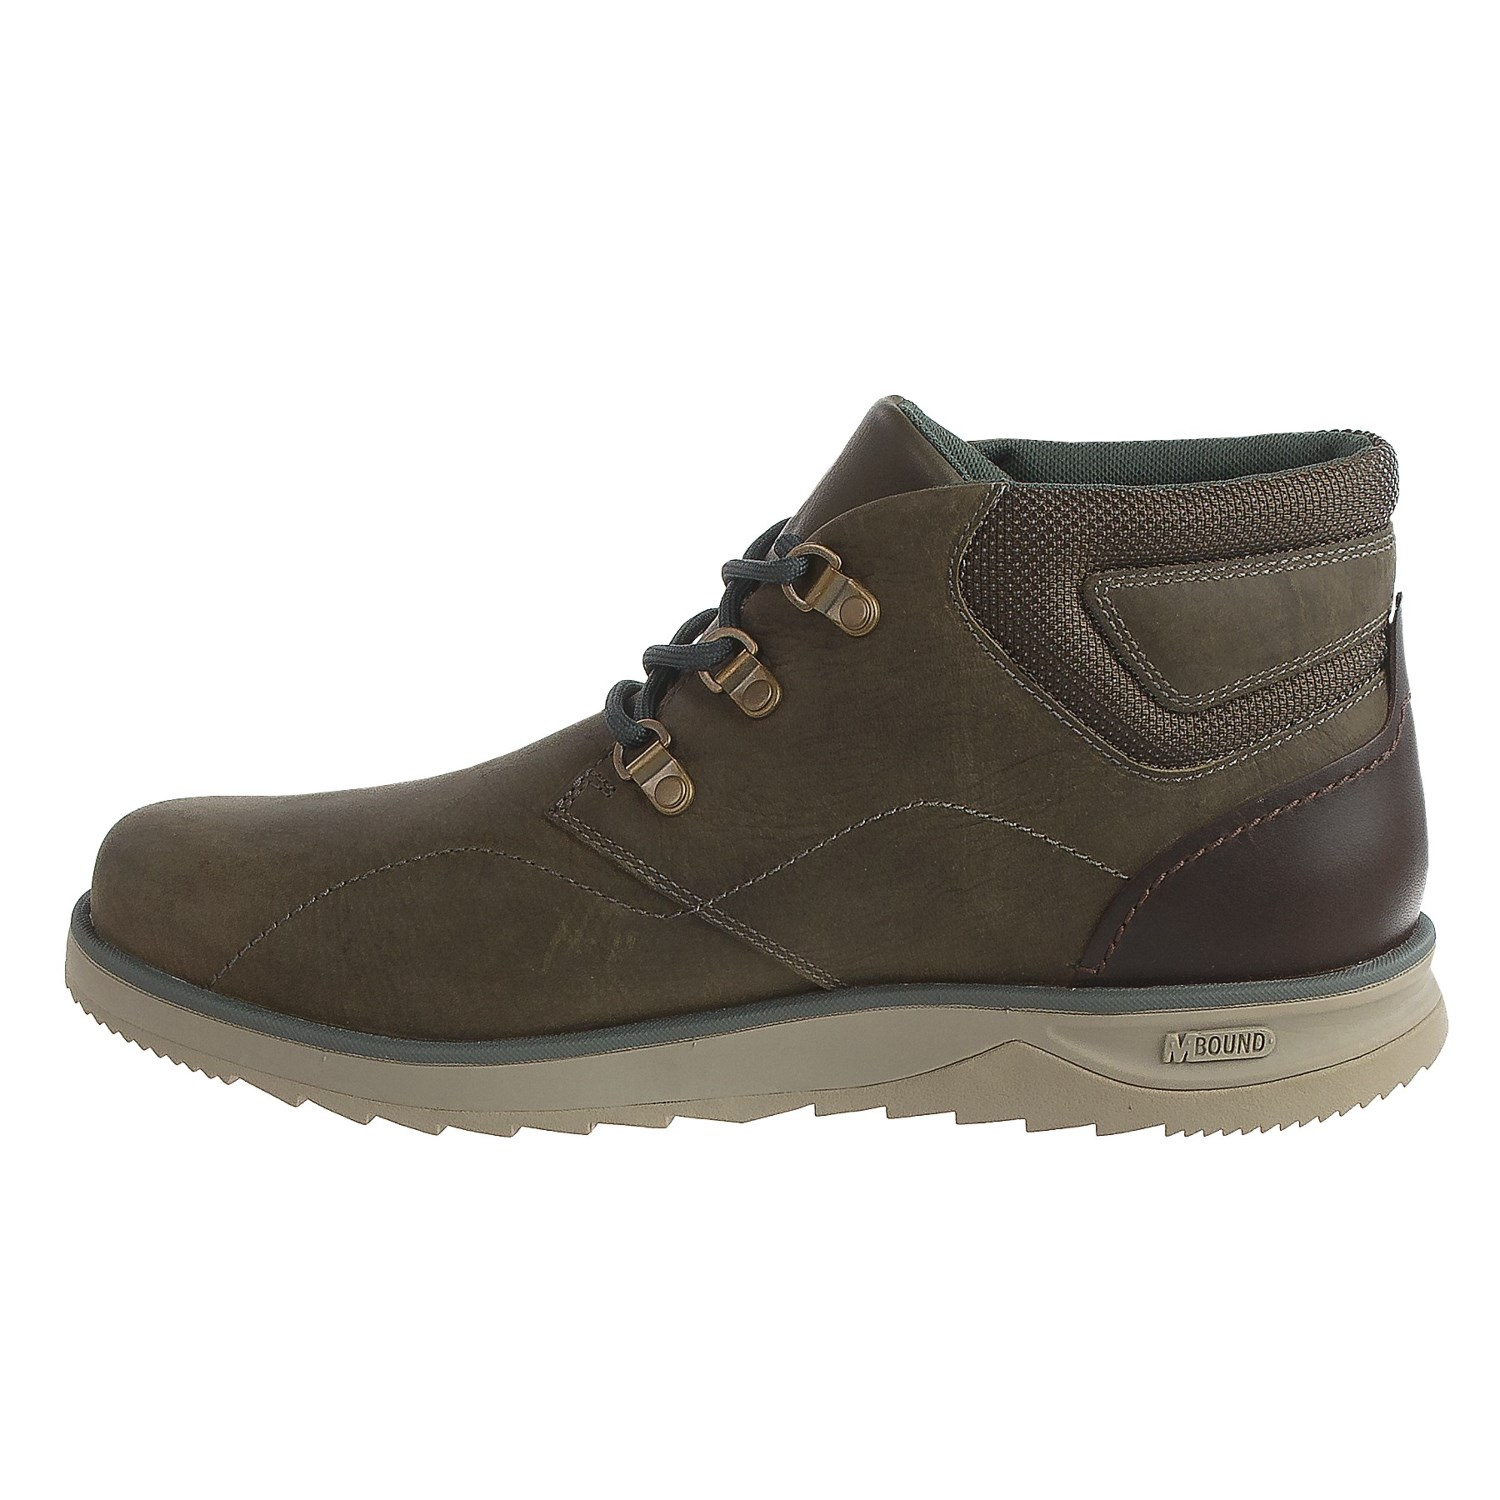 Merrell Black Leather Shoes Women